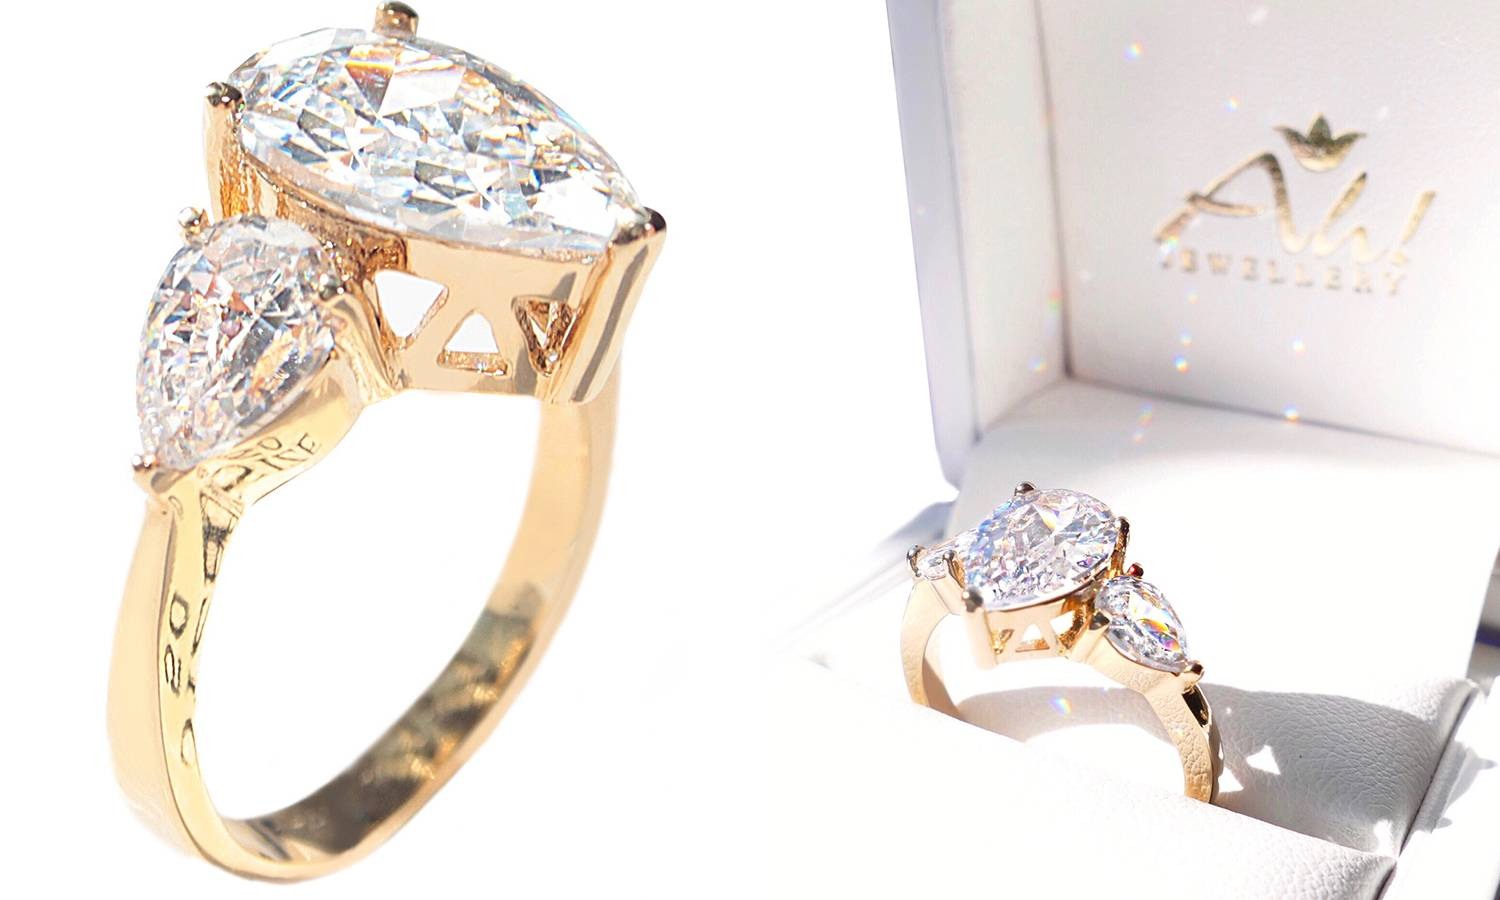 189.00 Ah! Jewellery Gold-Filled 8mm Pear Cut Simulated Diamond Ring: R-S